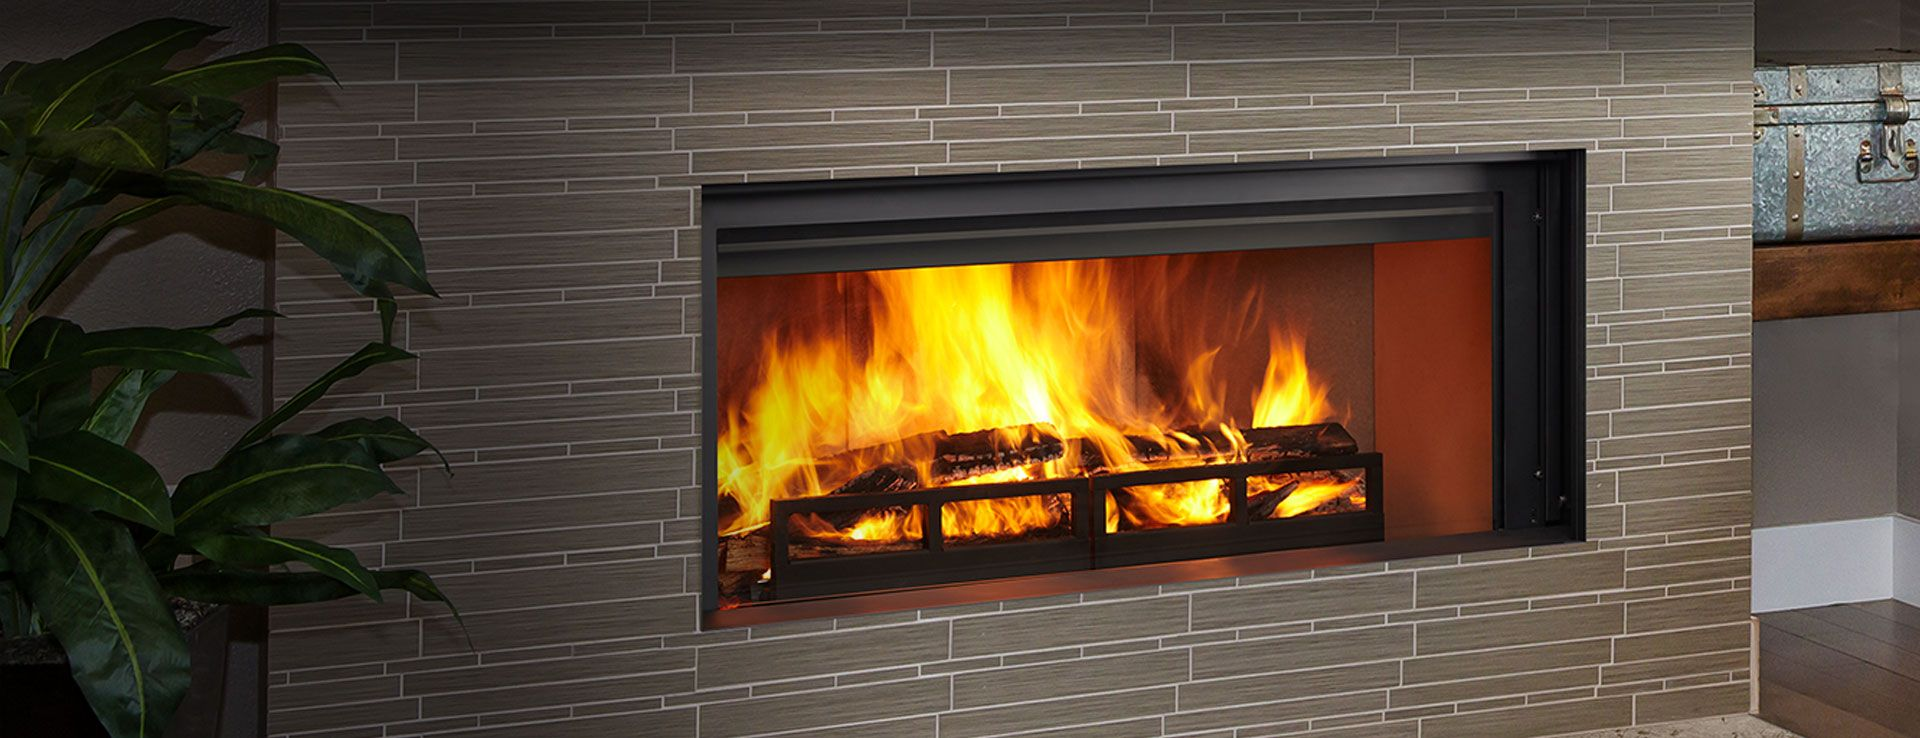 What Fuel Will You Burn This Fall Vented Gas Fireplace Fireplace Direct Vent Gas Fireplace